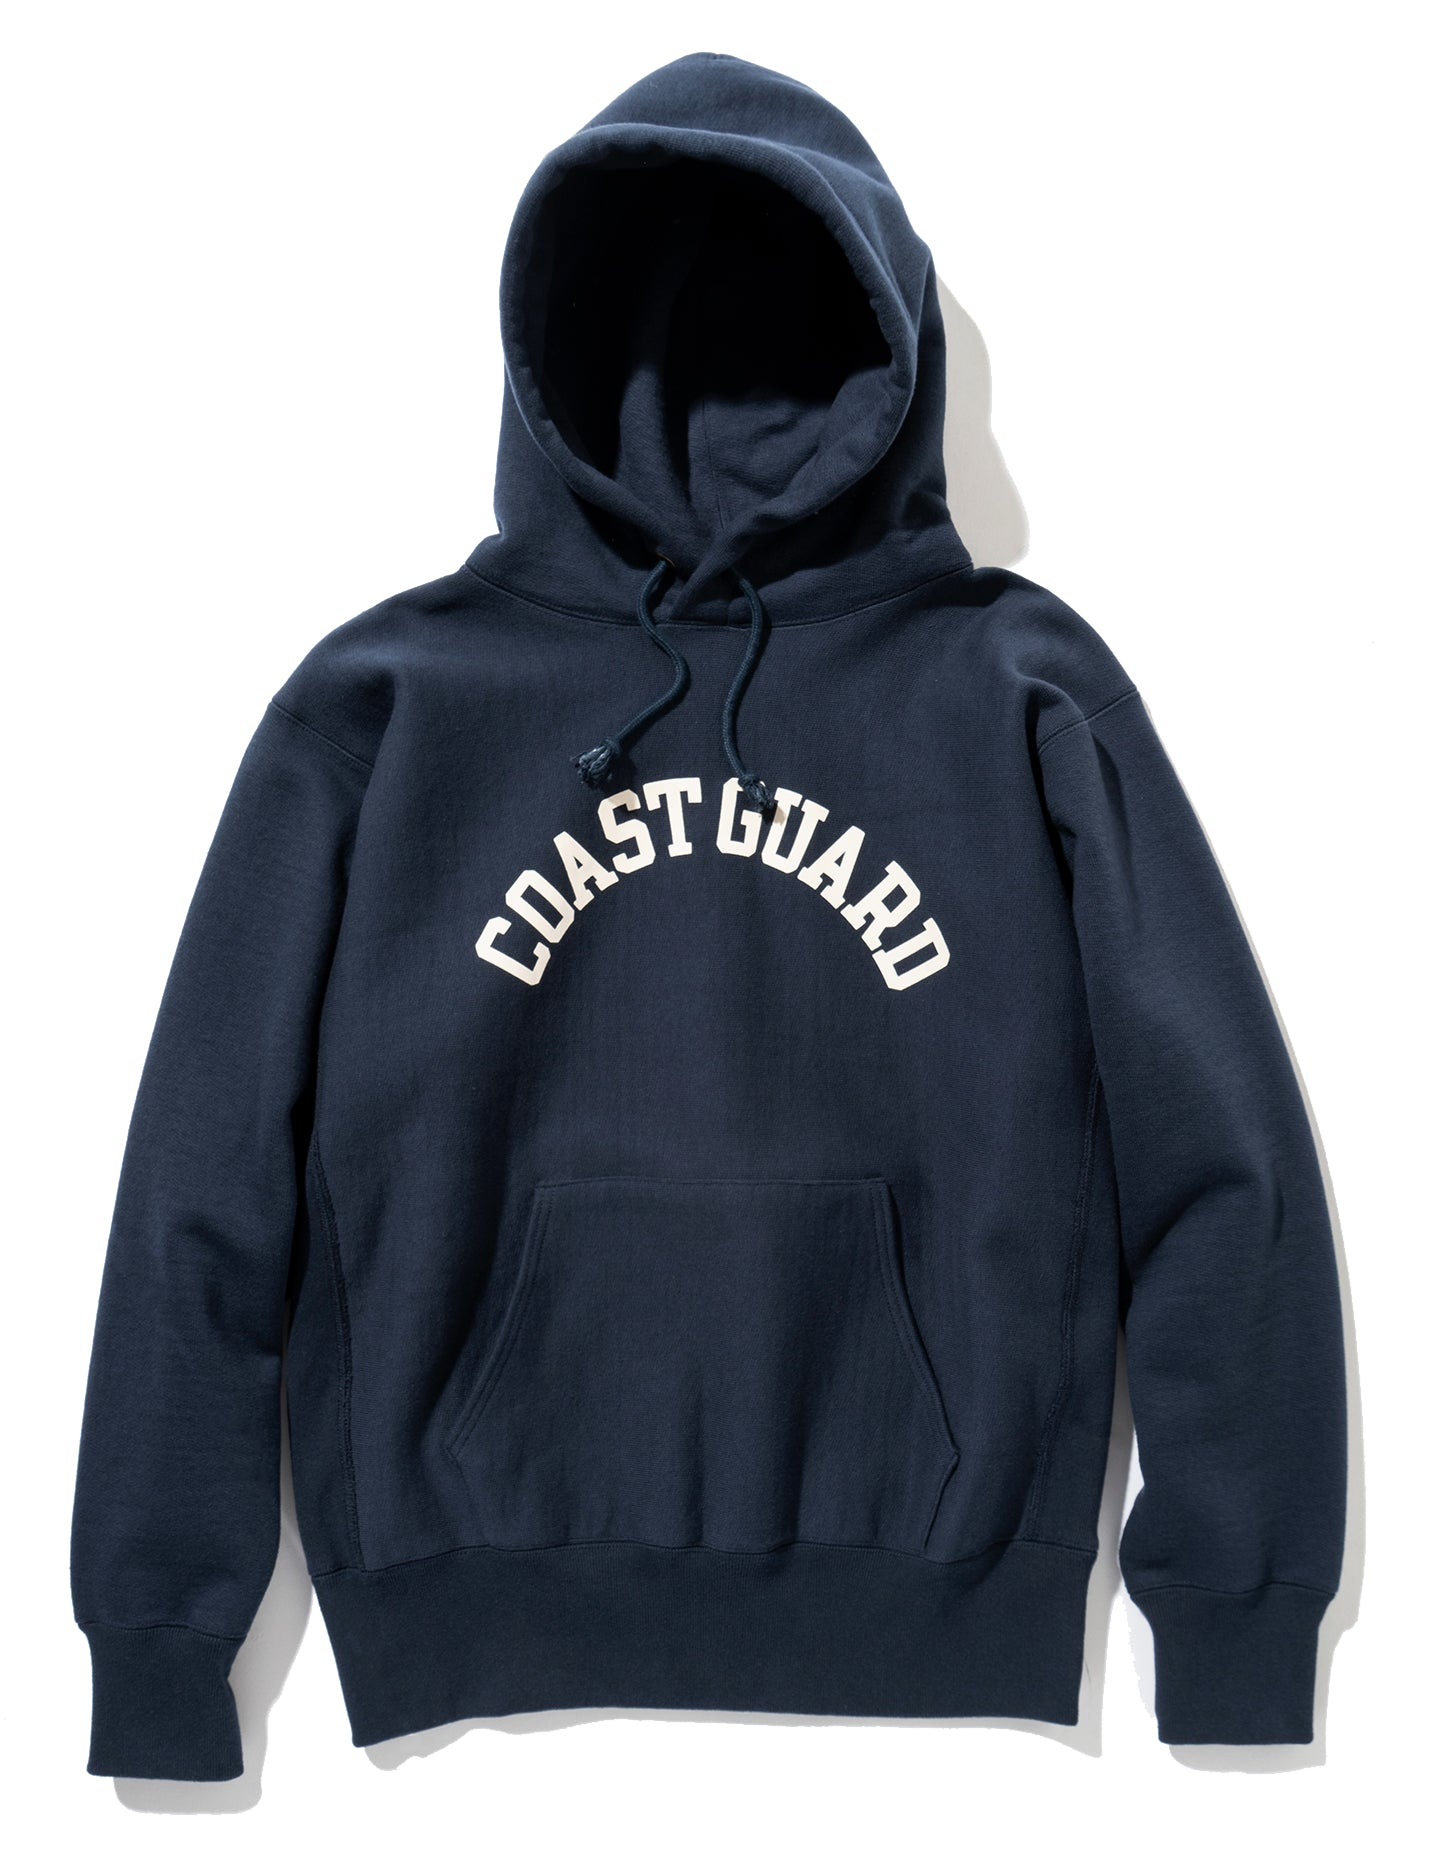 HOODED SWEATSHIRT / COAST GUARD